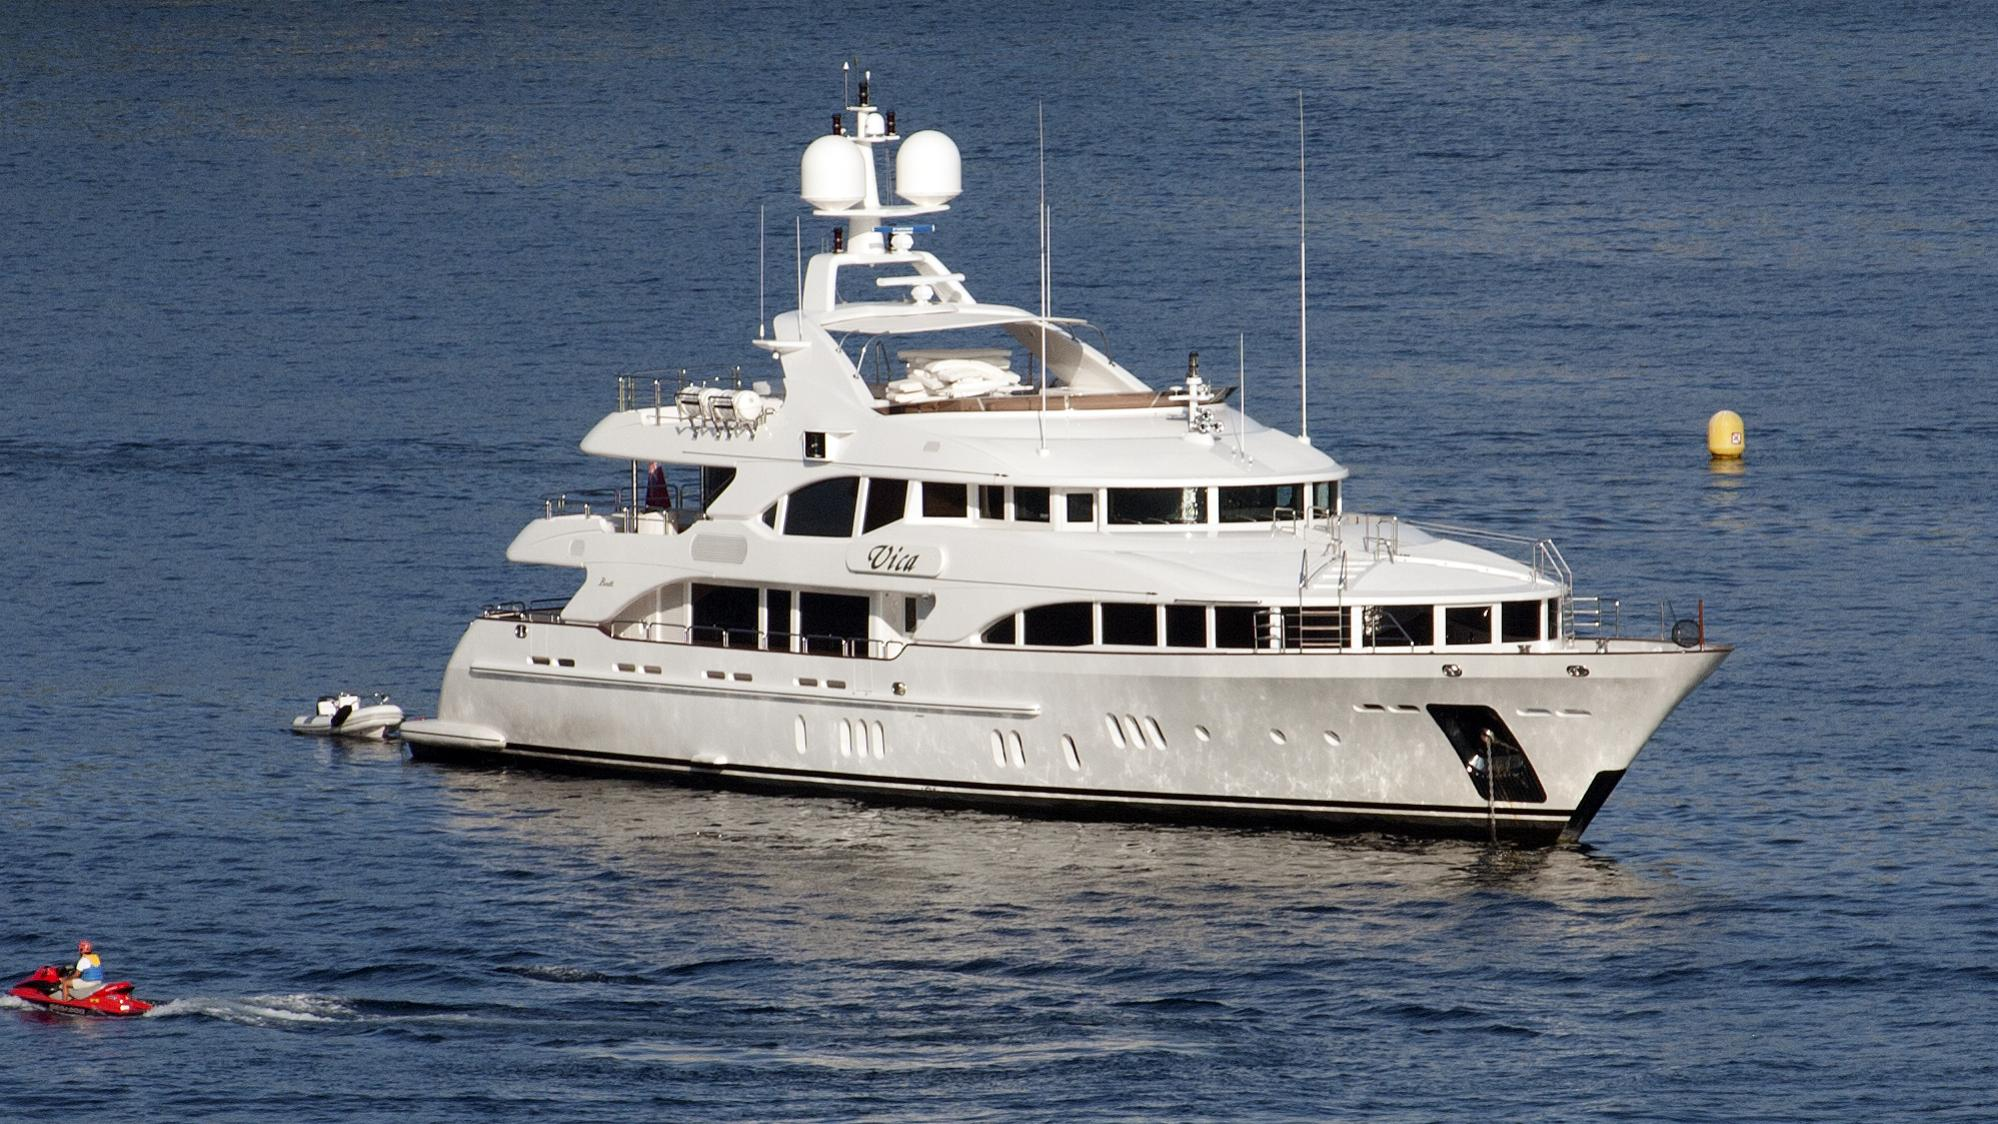 vica-yacht-exterior